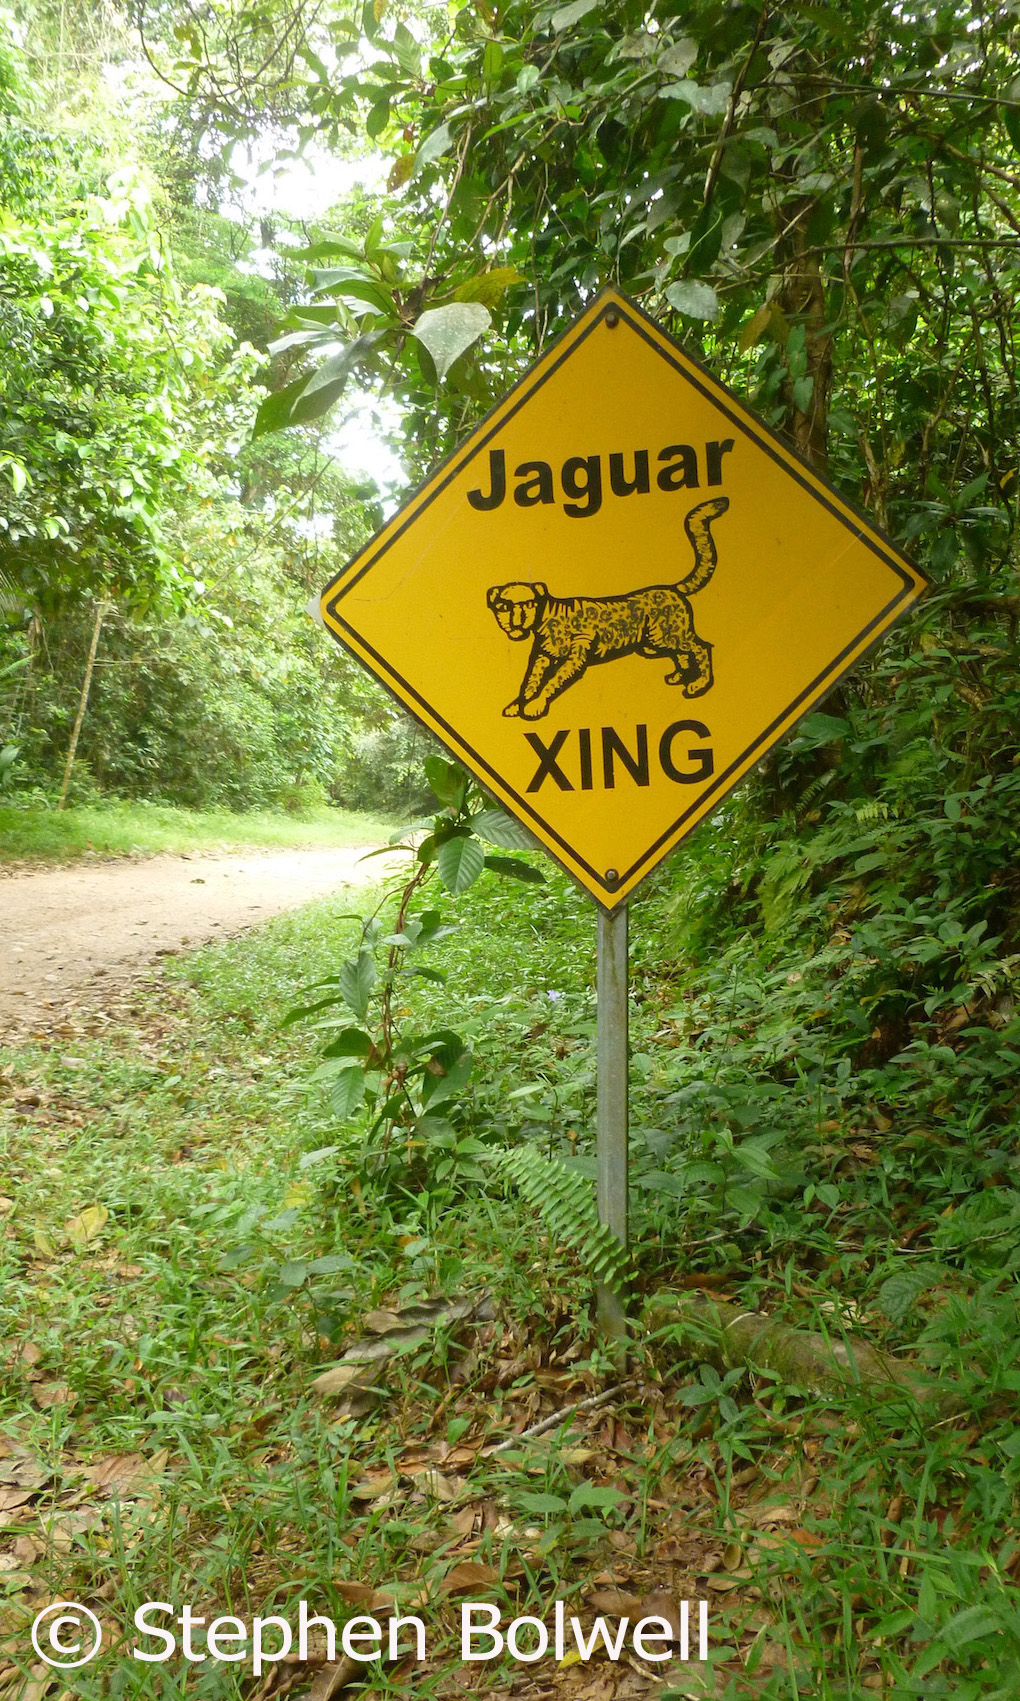 On the way into what is said to be the first Jaguar preserve in existence, we see this sign. I slow down, because jaguars can no doubt read and will crossing here.